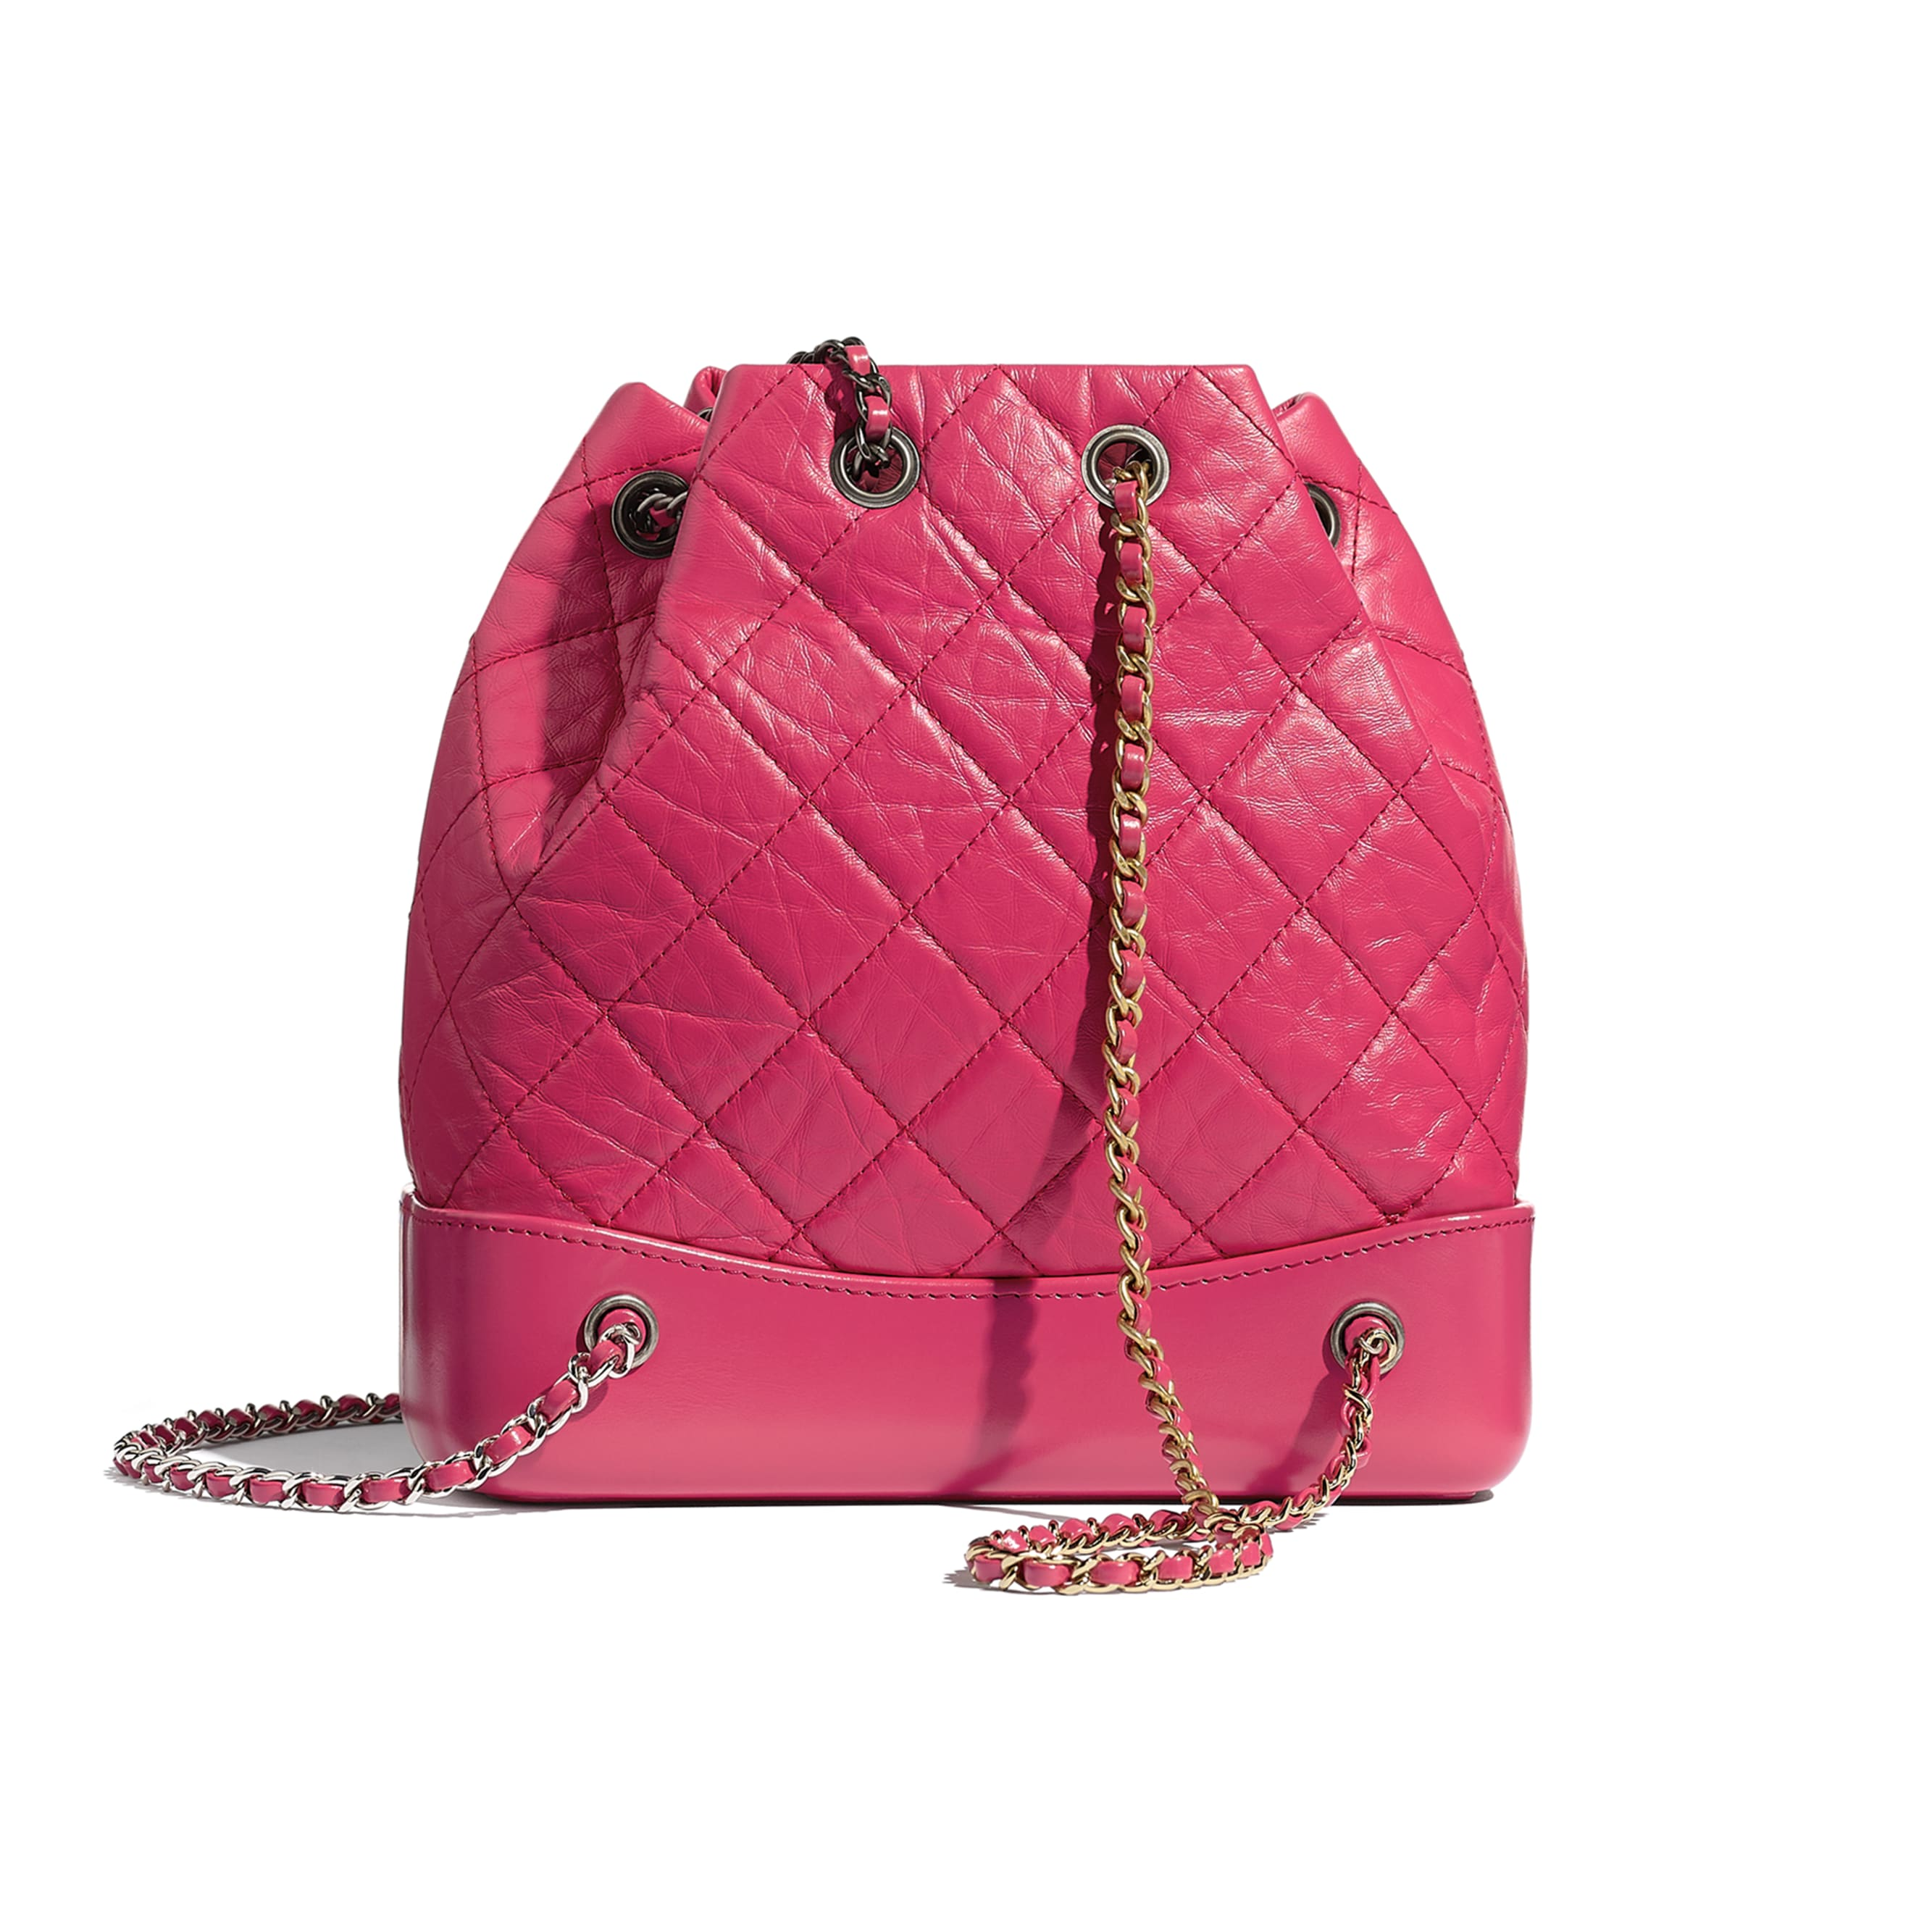 CHANEL'S GABRIELLE Small Backpack - Pink - Aged Calfskin, Smooth Calfskin, Gold-Tone, Silver-Tone & Ruthenium-Finish Metal - CHANEL - Alternative view - see standard sized version